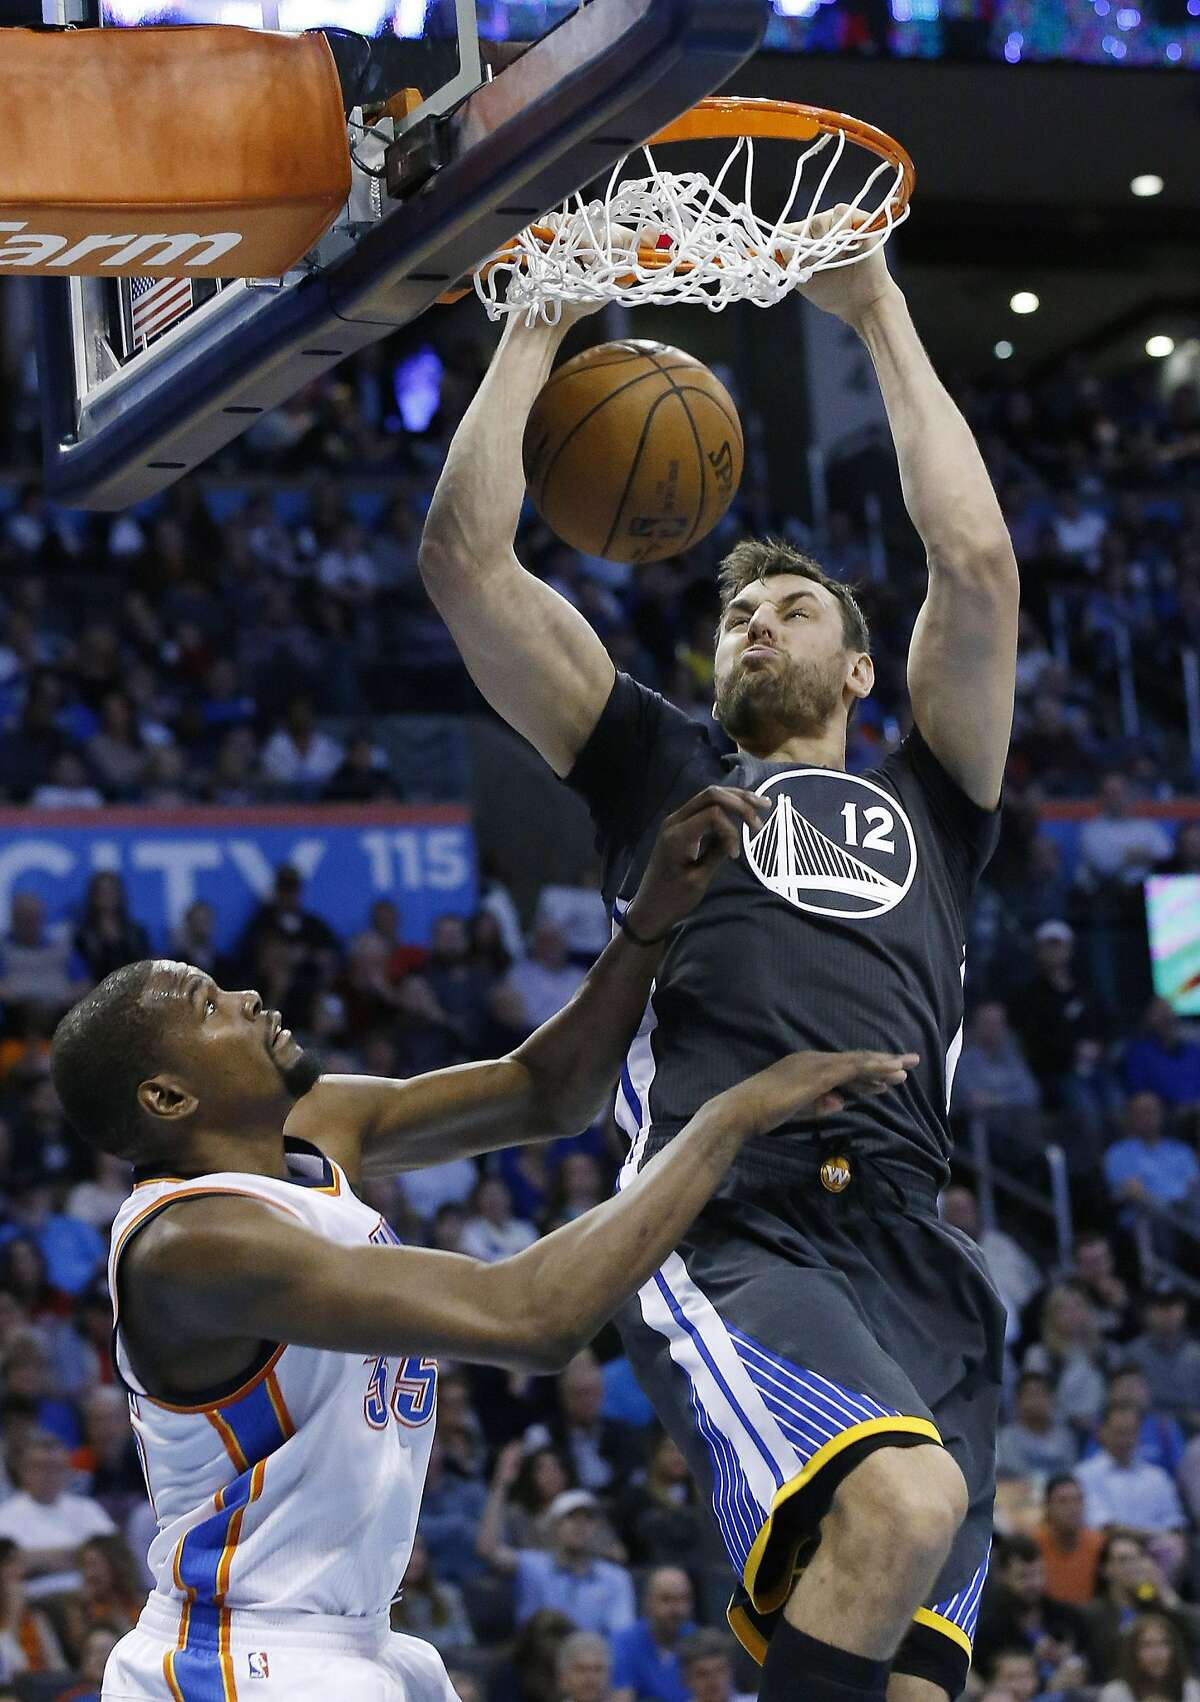 Golden State Warriors center Andrew Bogut (12) dunks in front of Oklahoma City Thunder forward Kevin Durant (35) during the second quarter of an NBA basketball game in Oklahoma City, Saturday, Feb. 27, 2016.